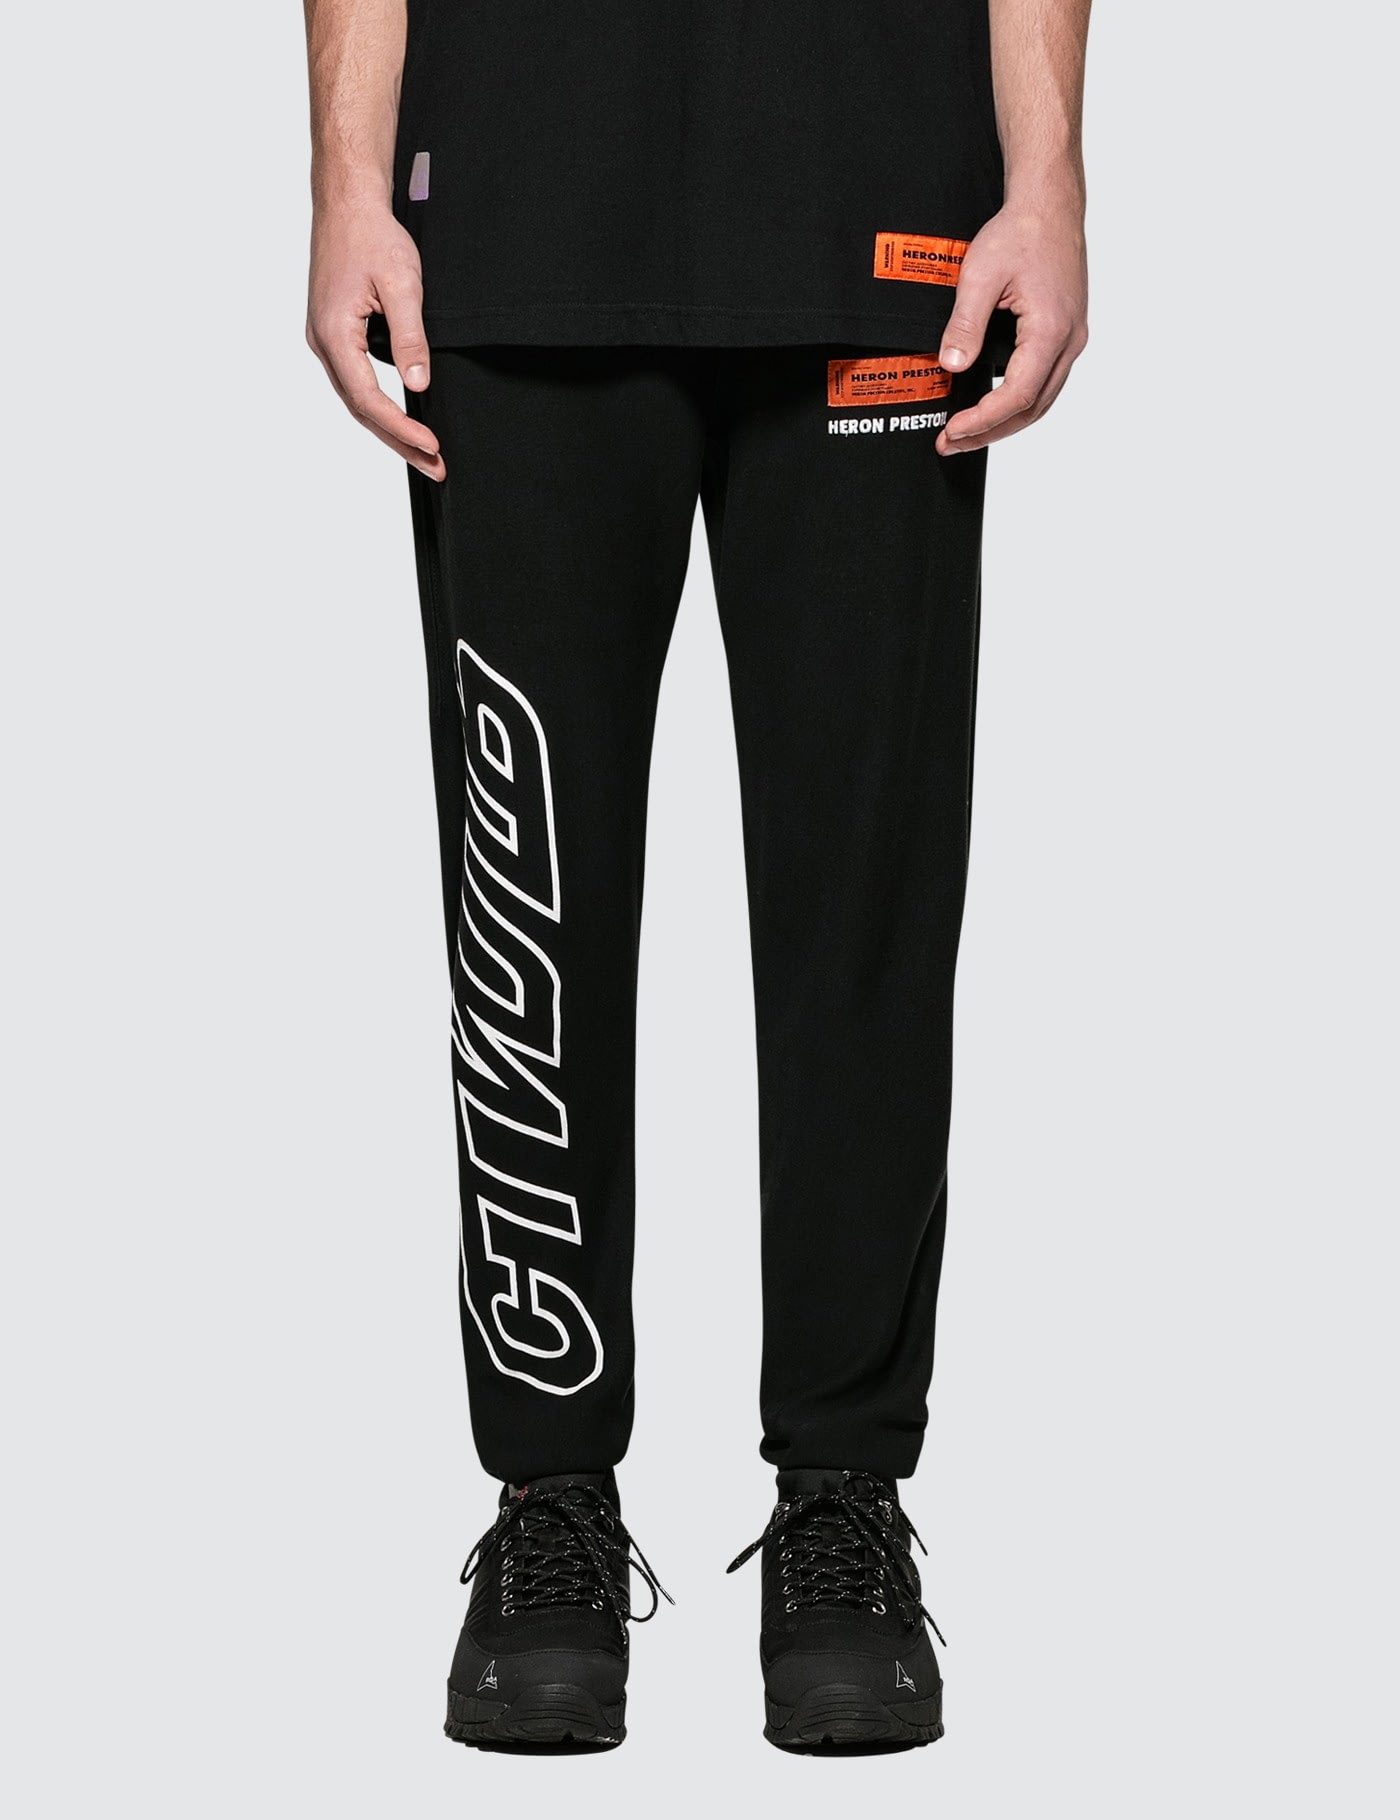 shopping factory outlet top-rated authentic CTNMB Outl. Slim Fit Sweatpants, Heron Preston